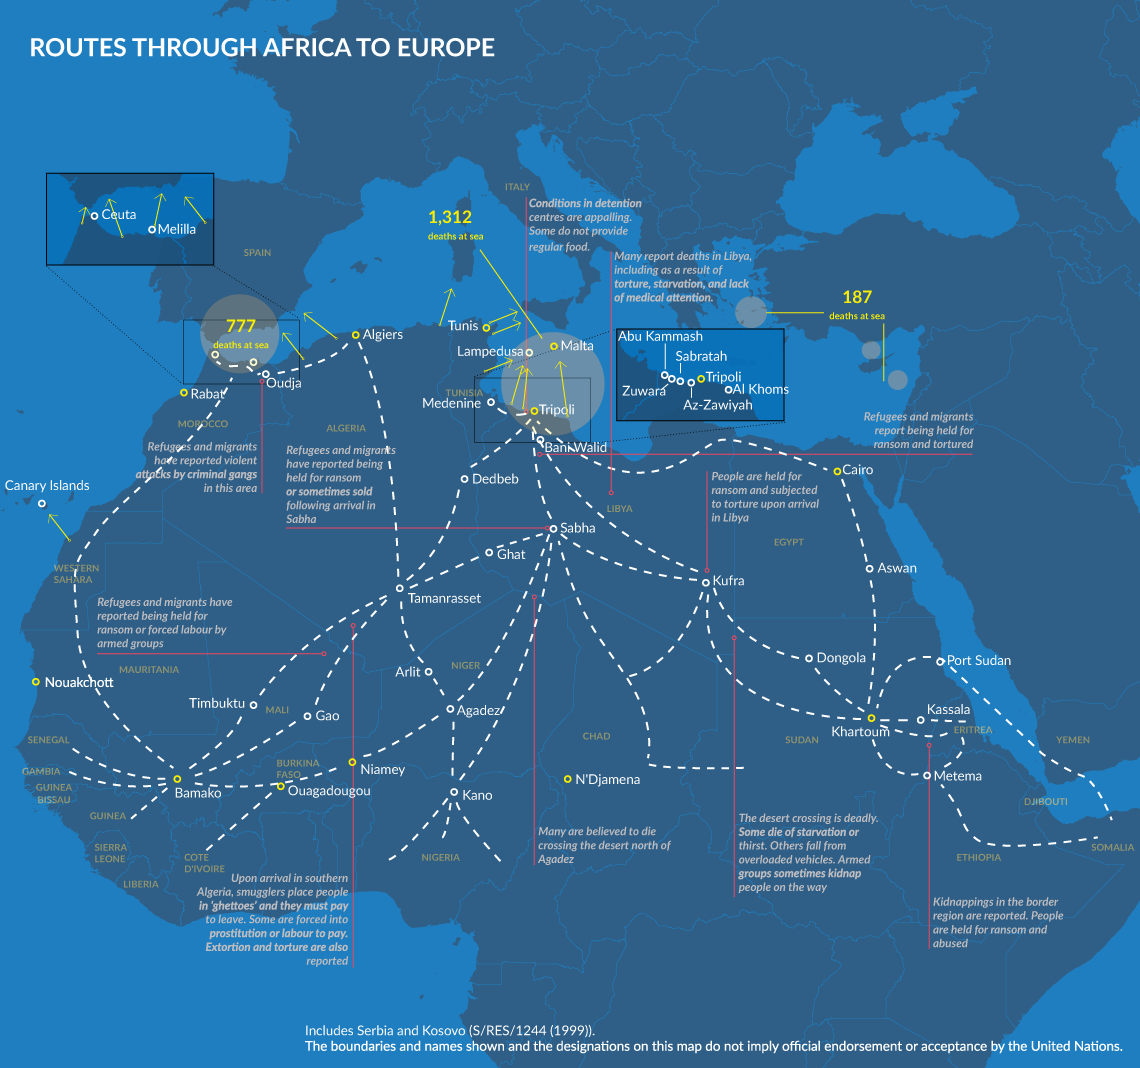 DESPERATE JOURNEYS - Refugees and migrants arriving in